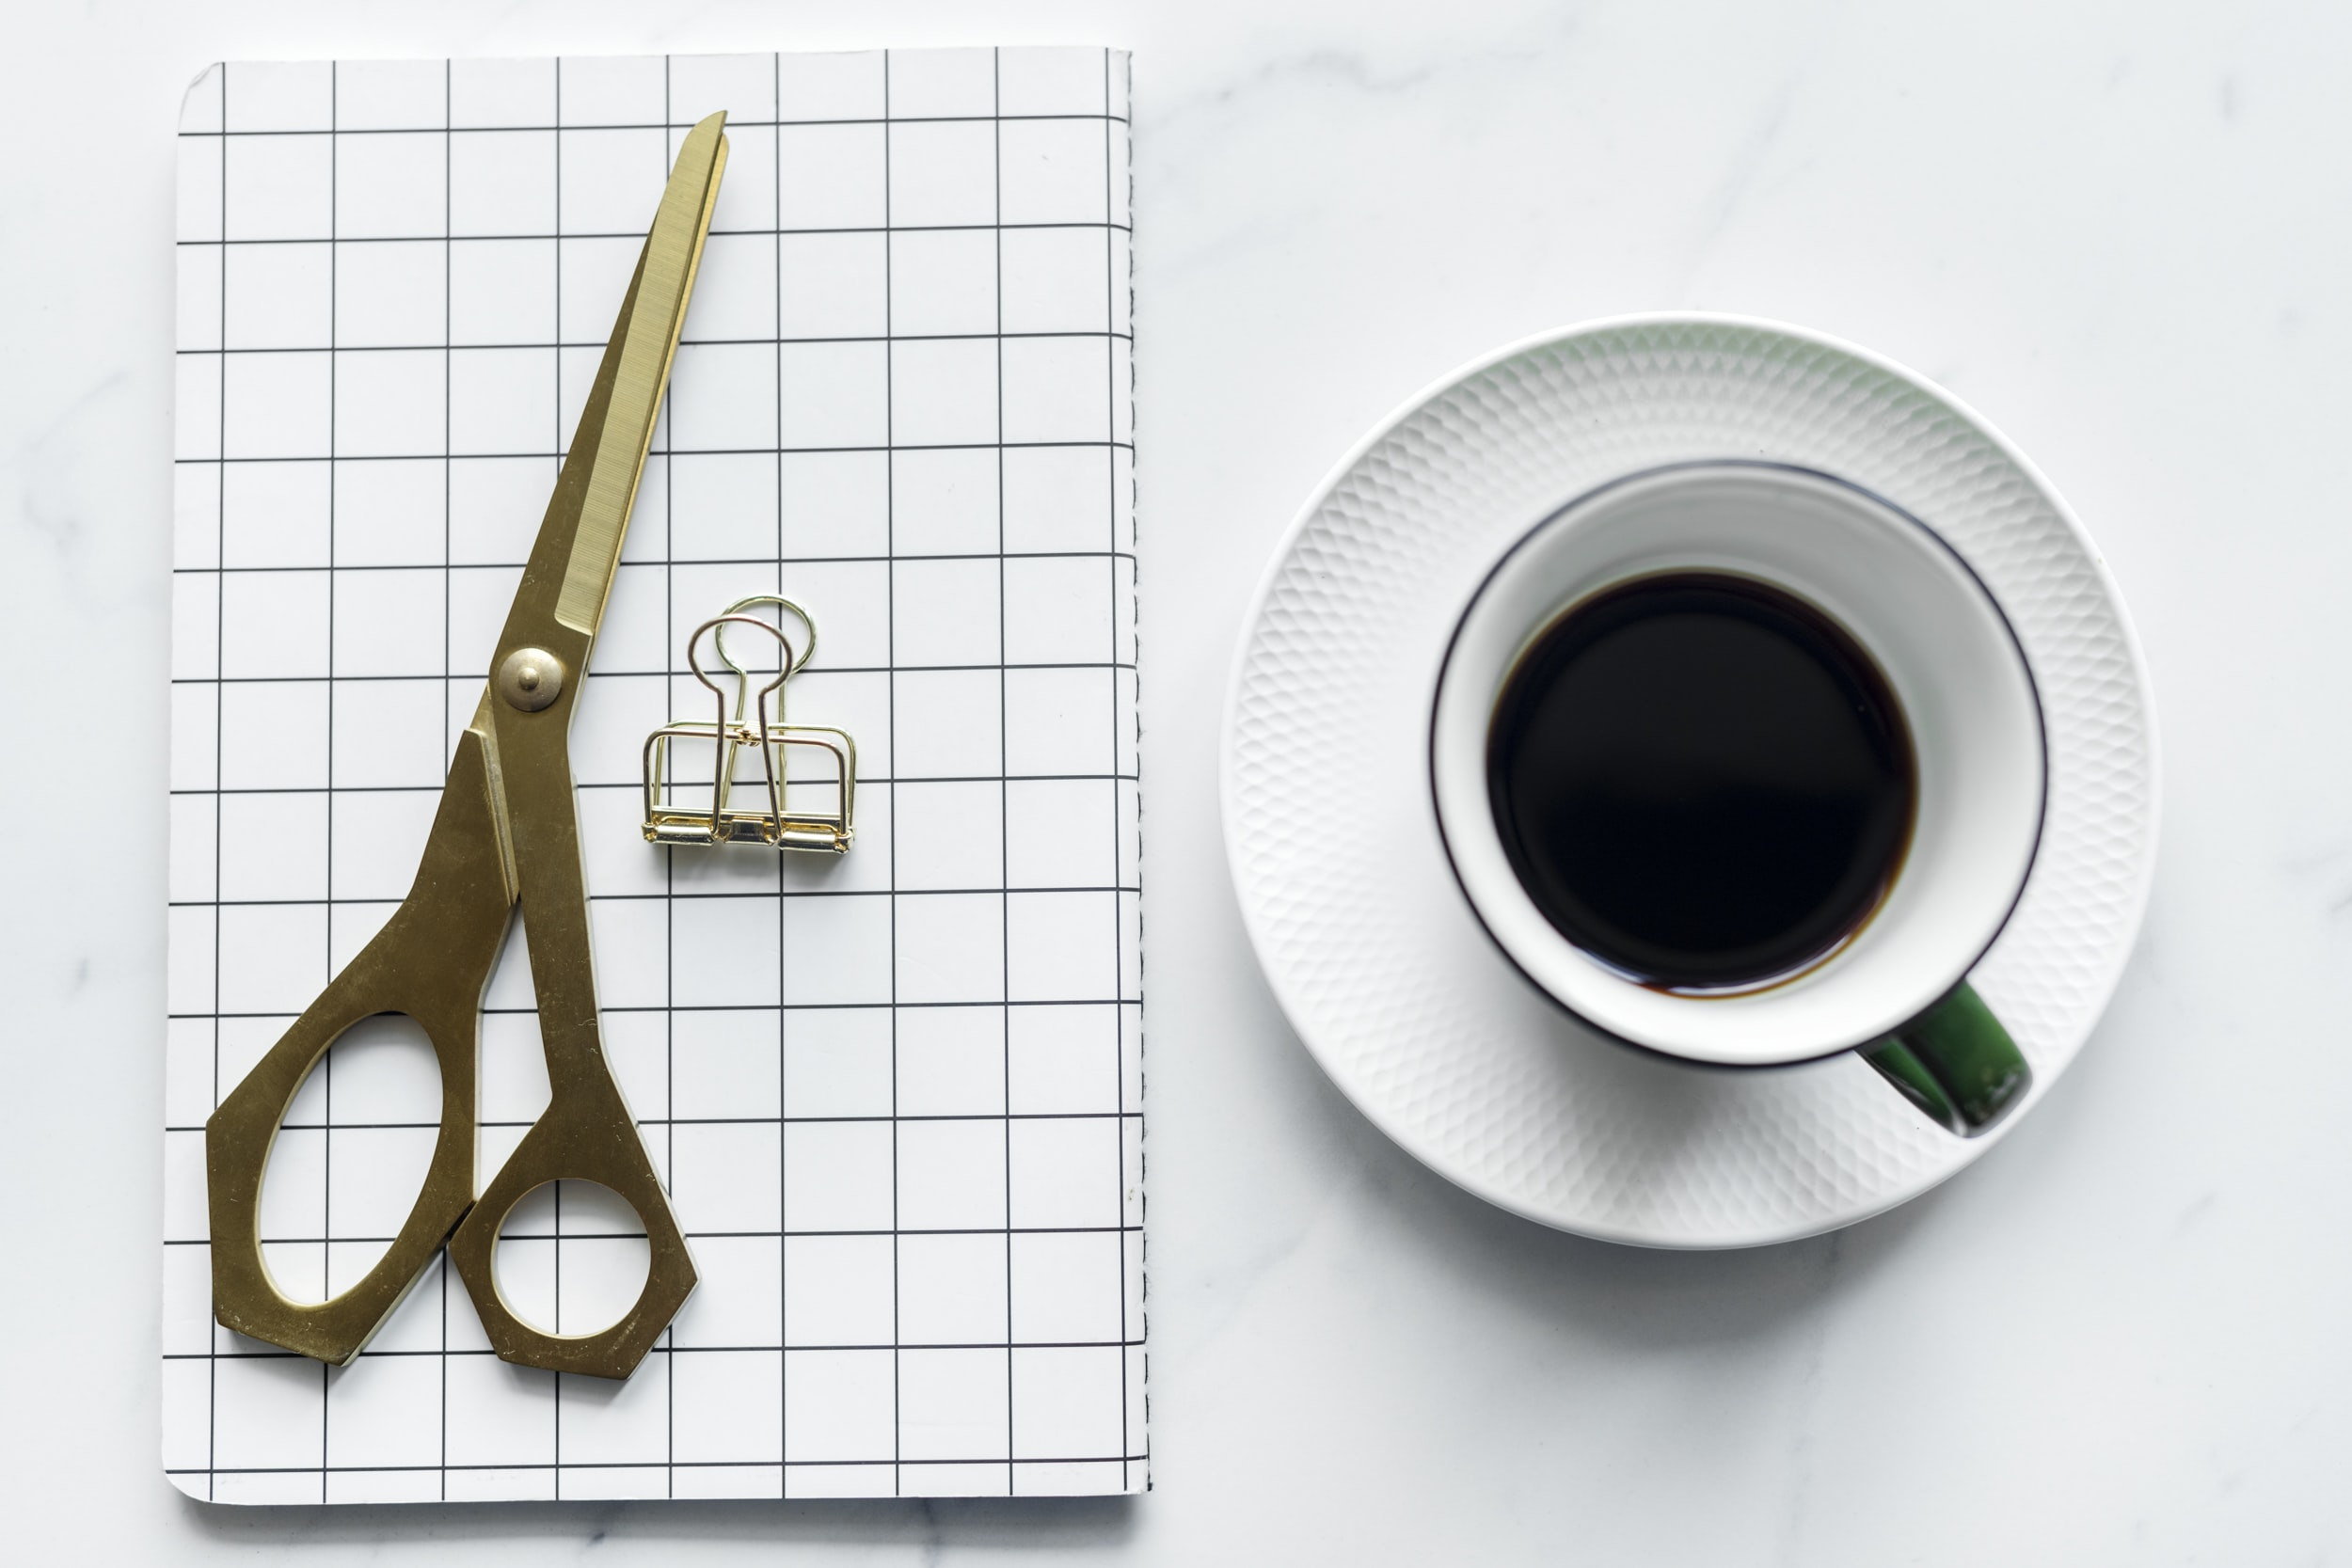 gold-colored scissors and white and green ceramic mug